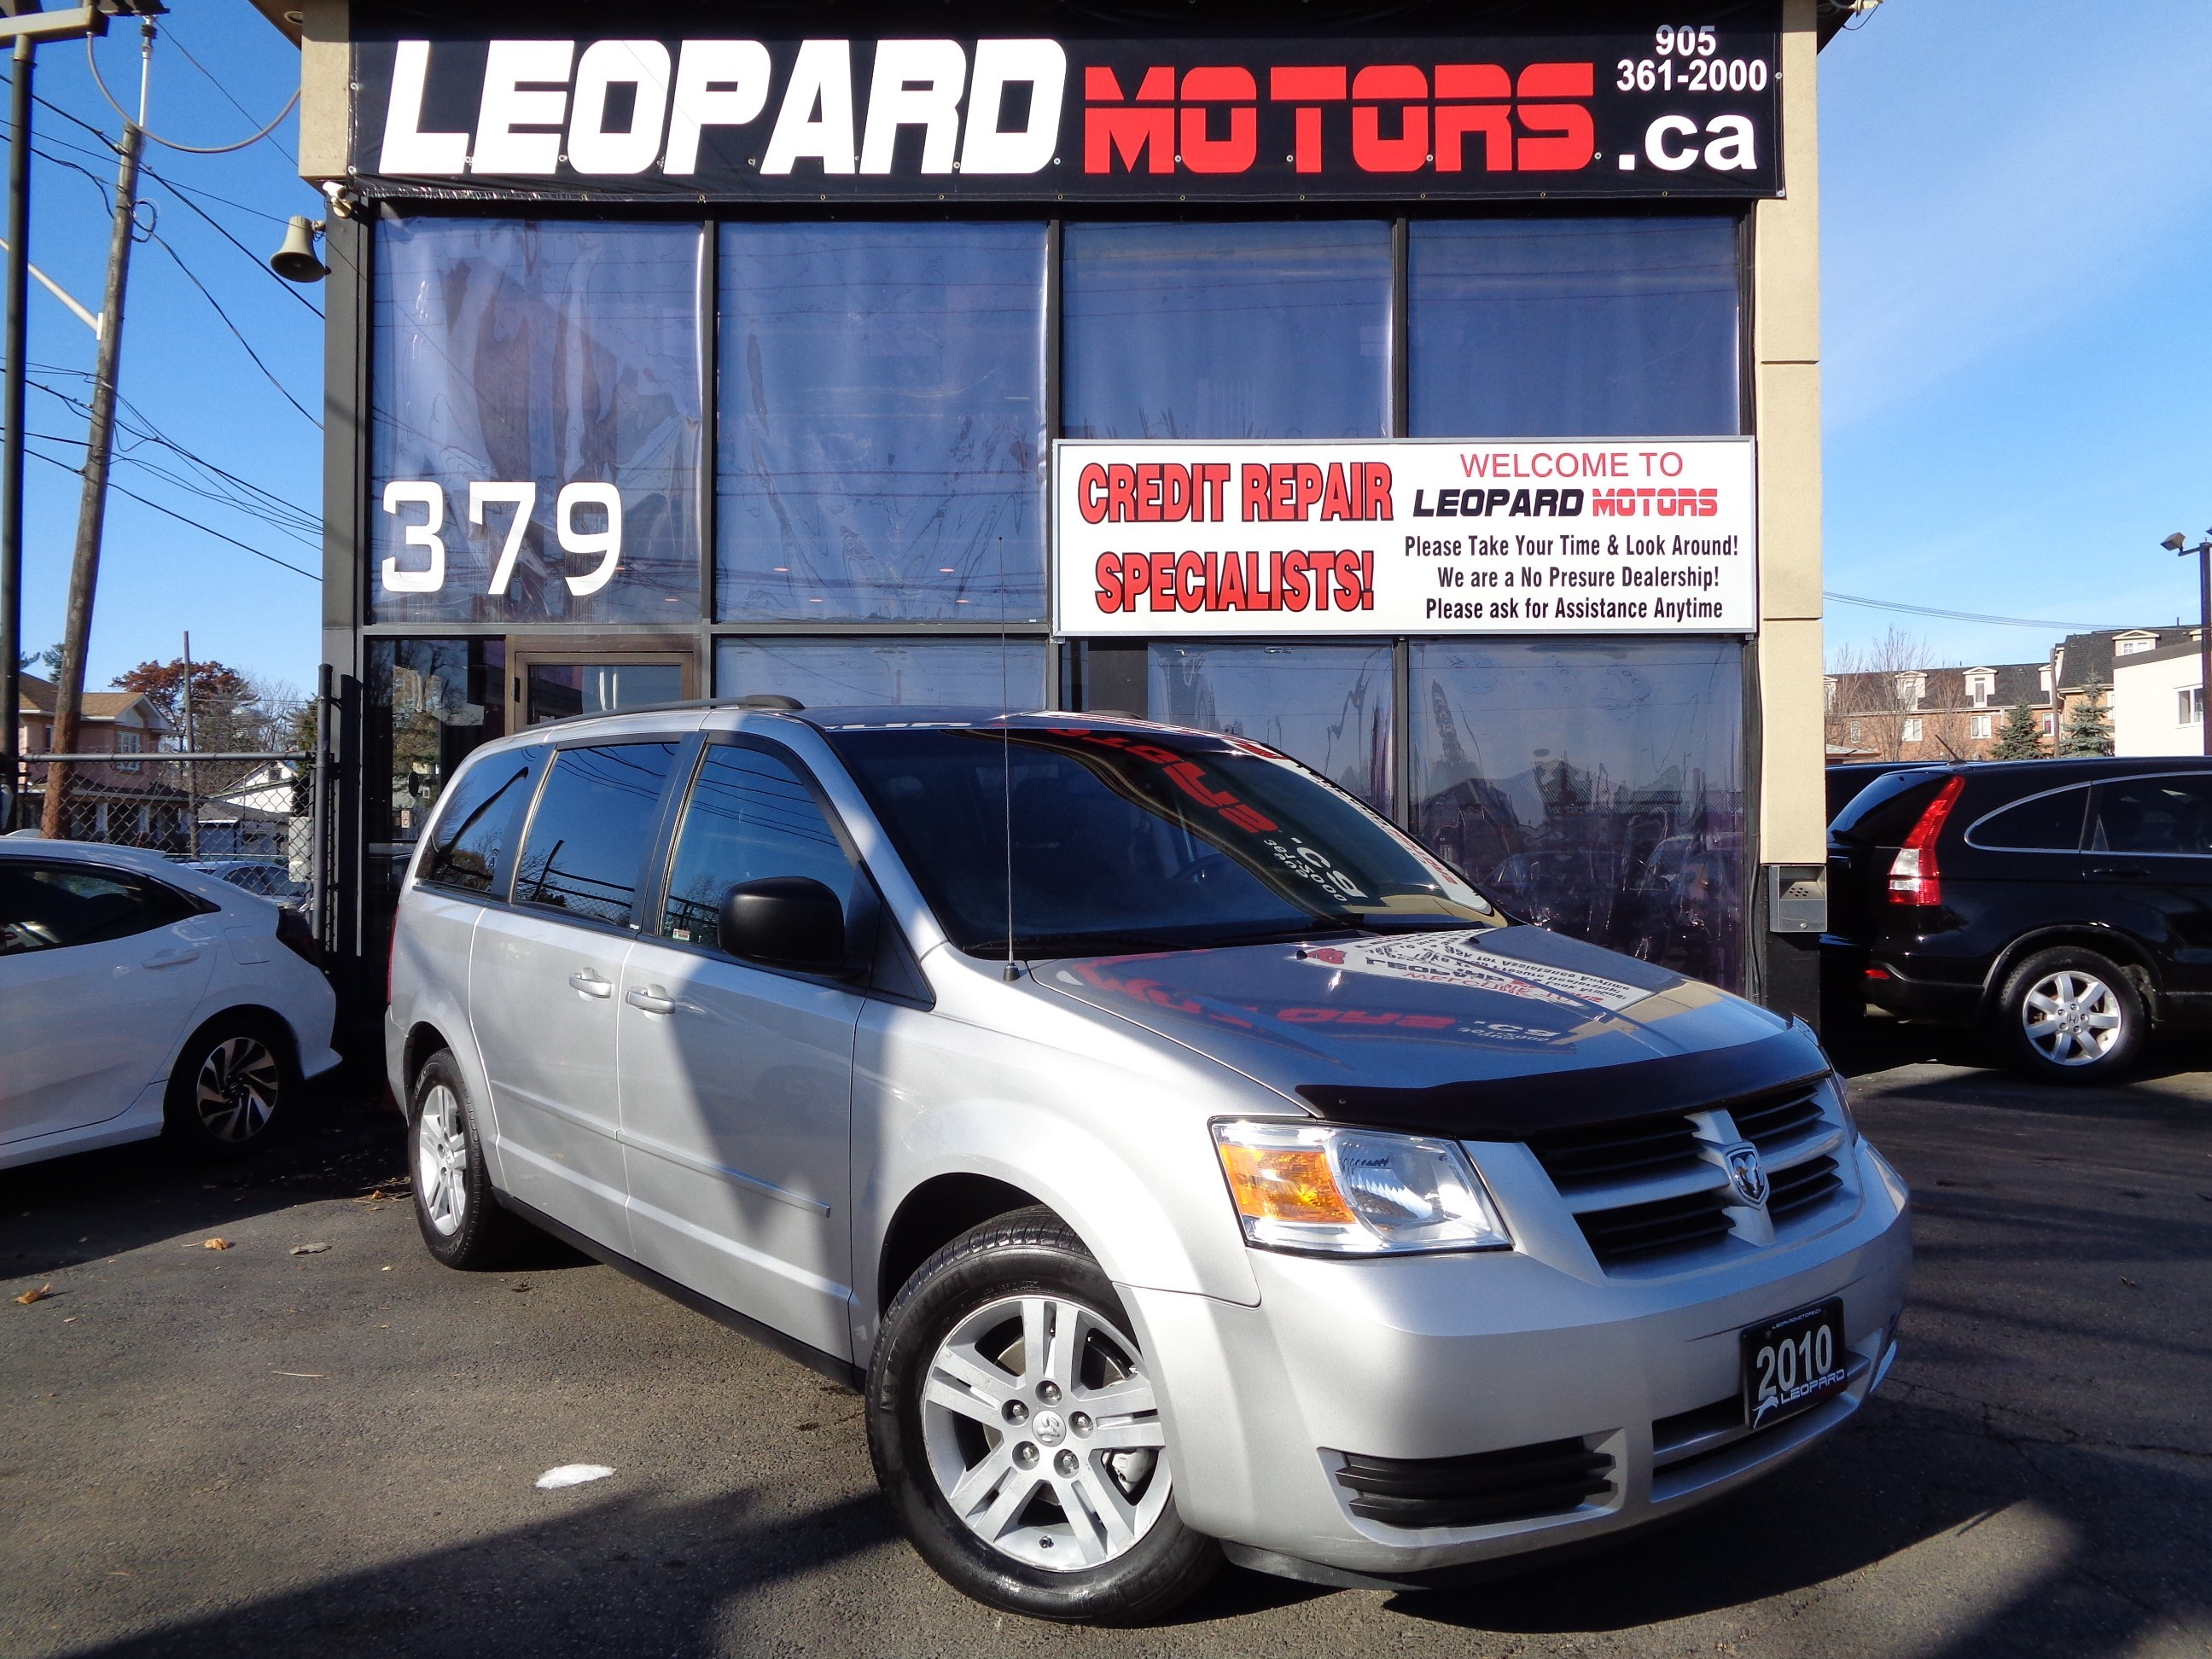 2010 Dodge Grand Caravan Leopard Motors Inc